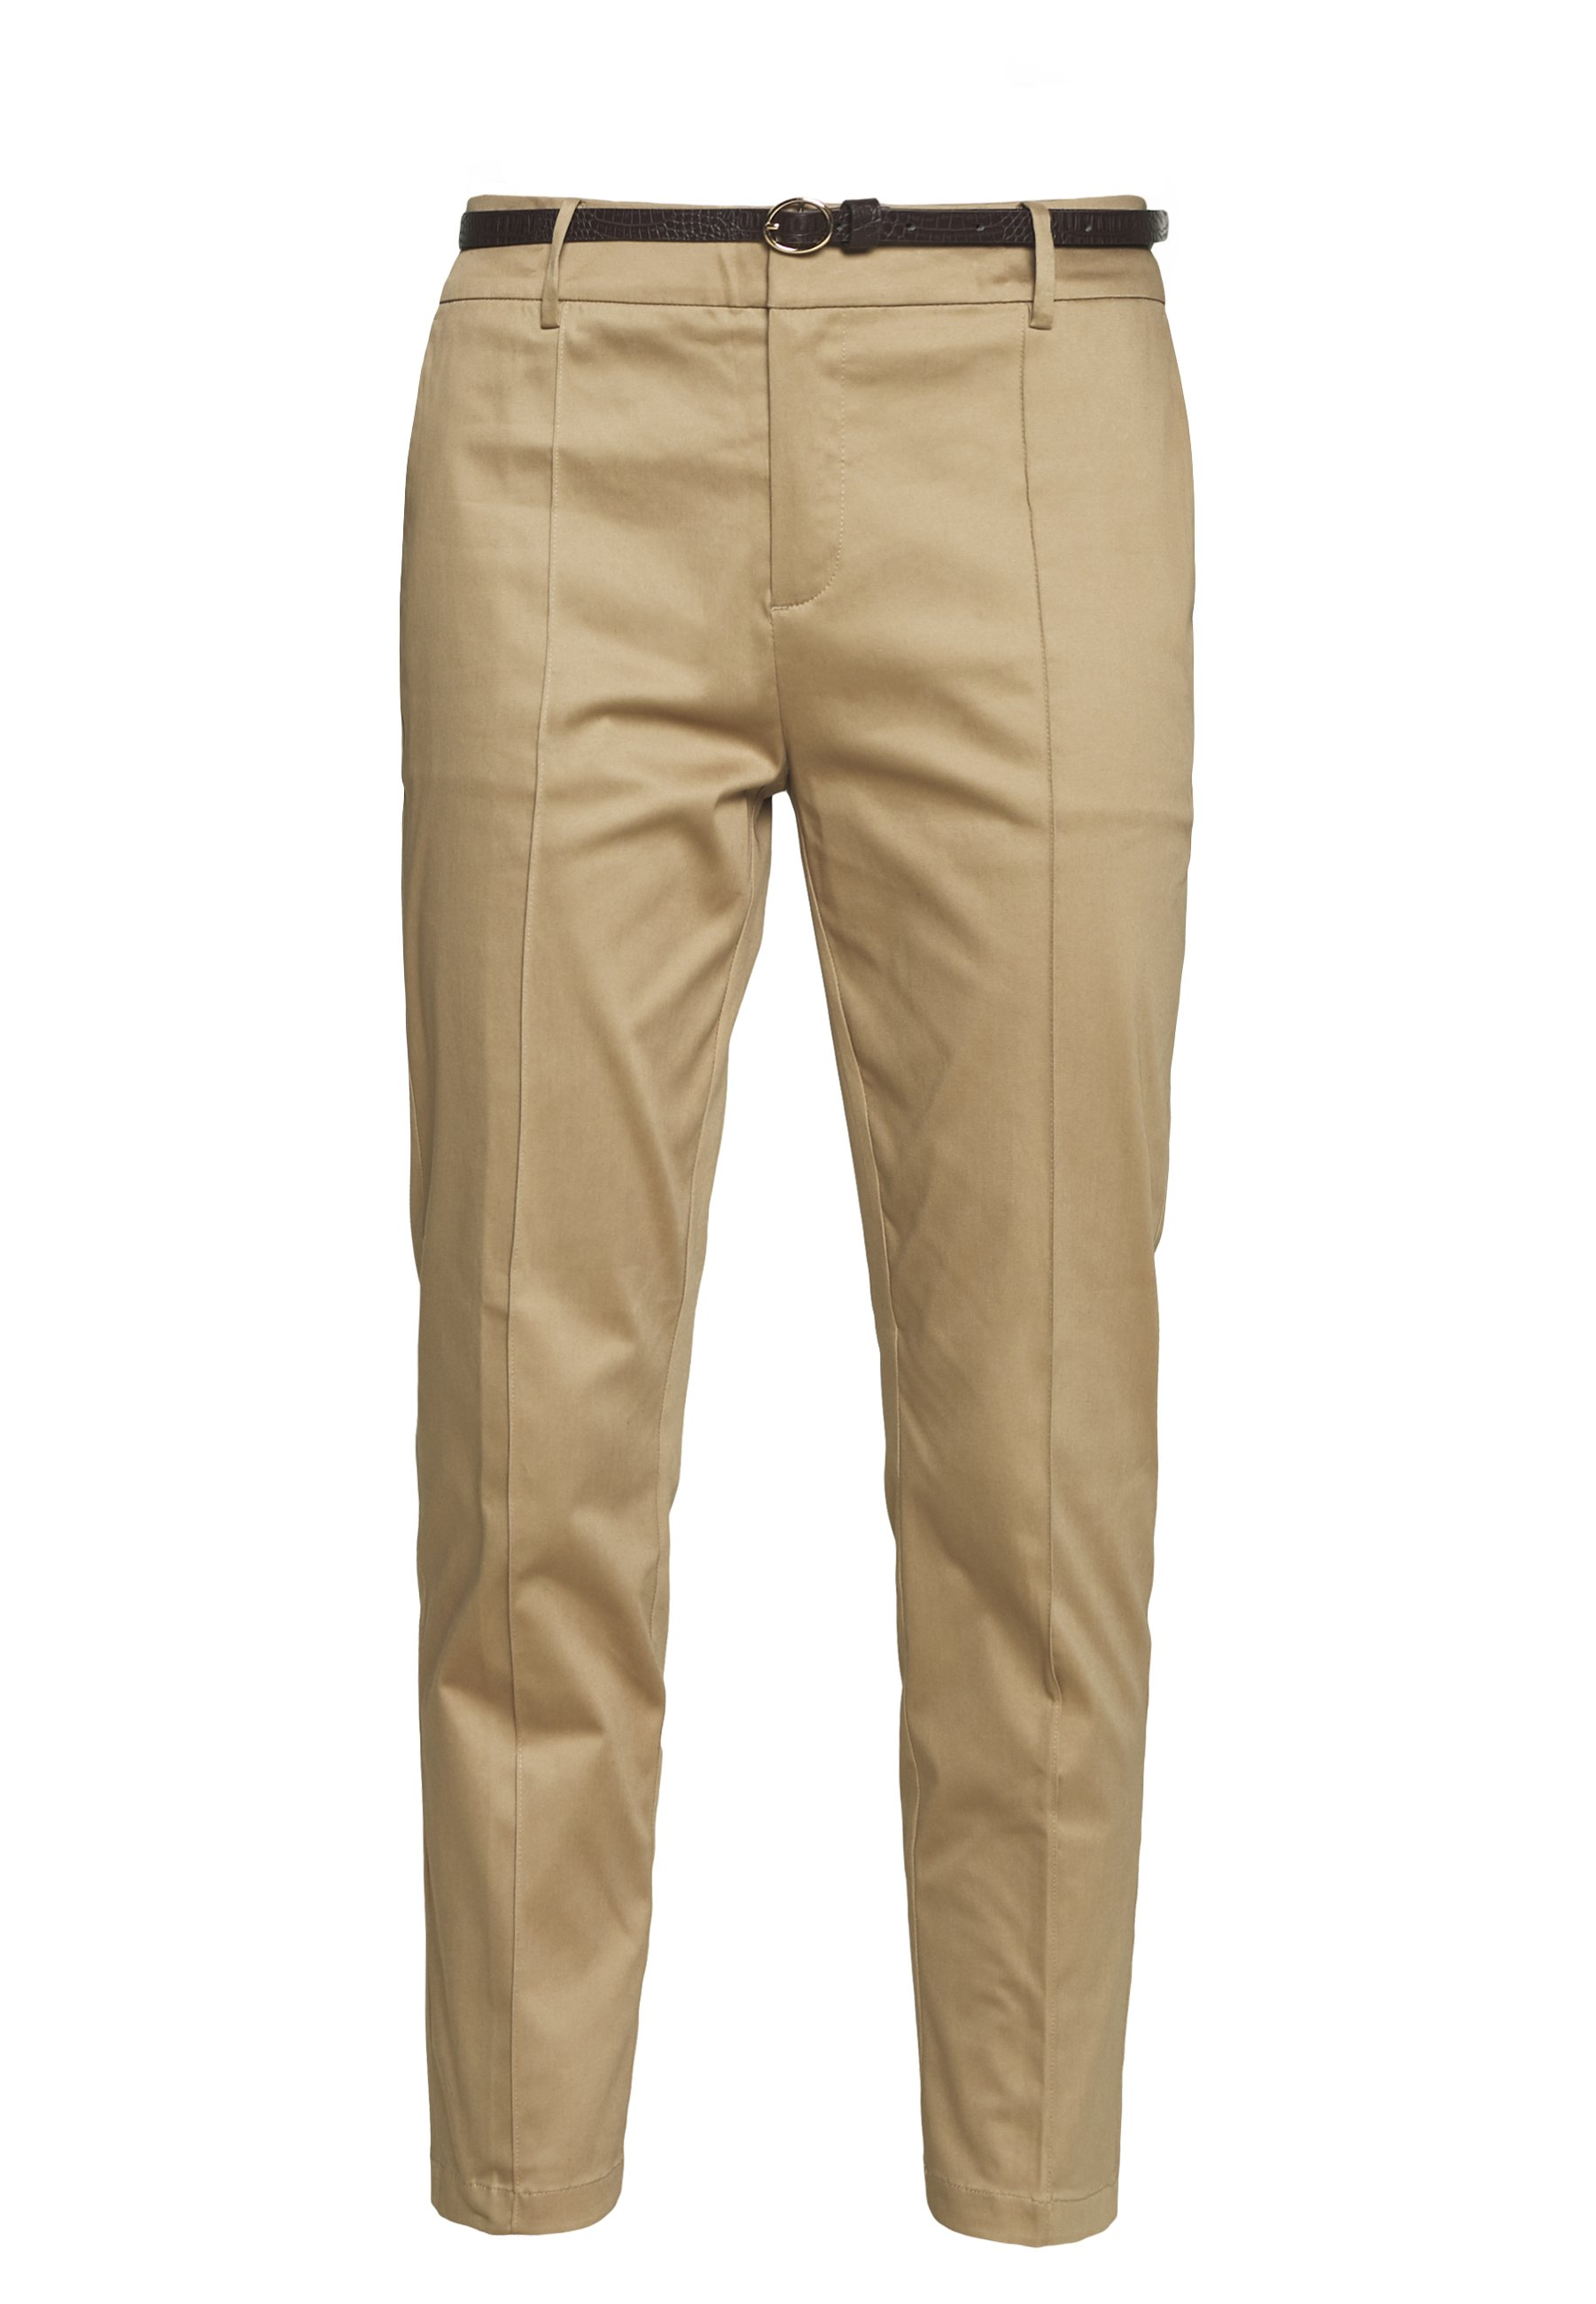 REGULAR FIT WITH STITCHED PLEAT Chino sand